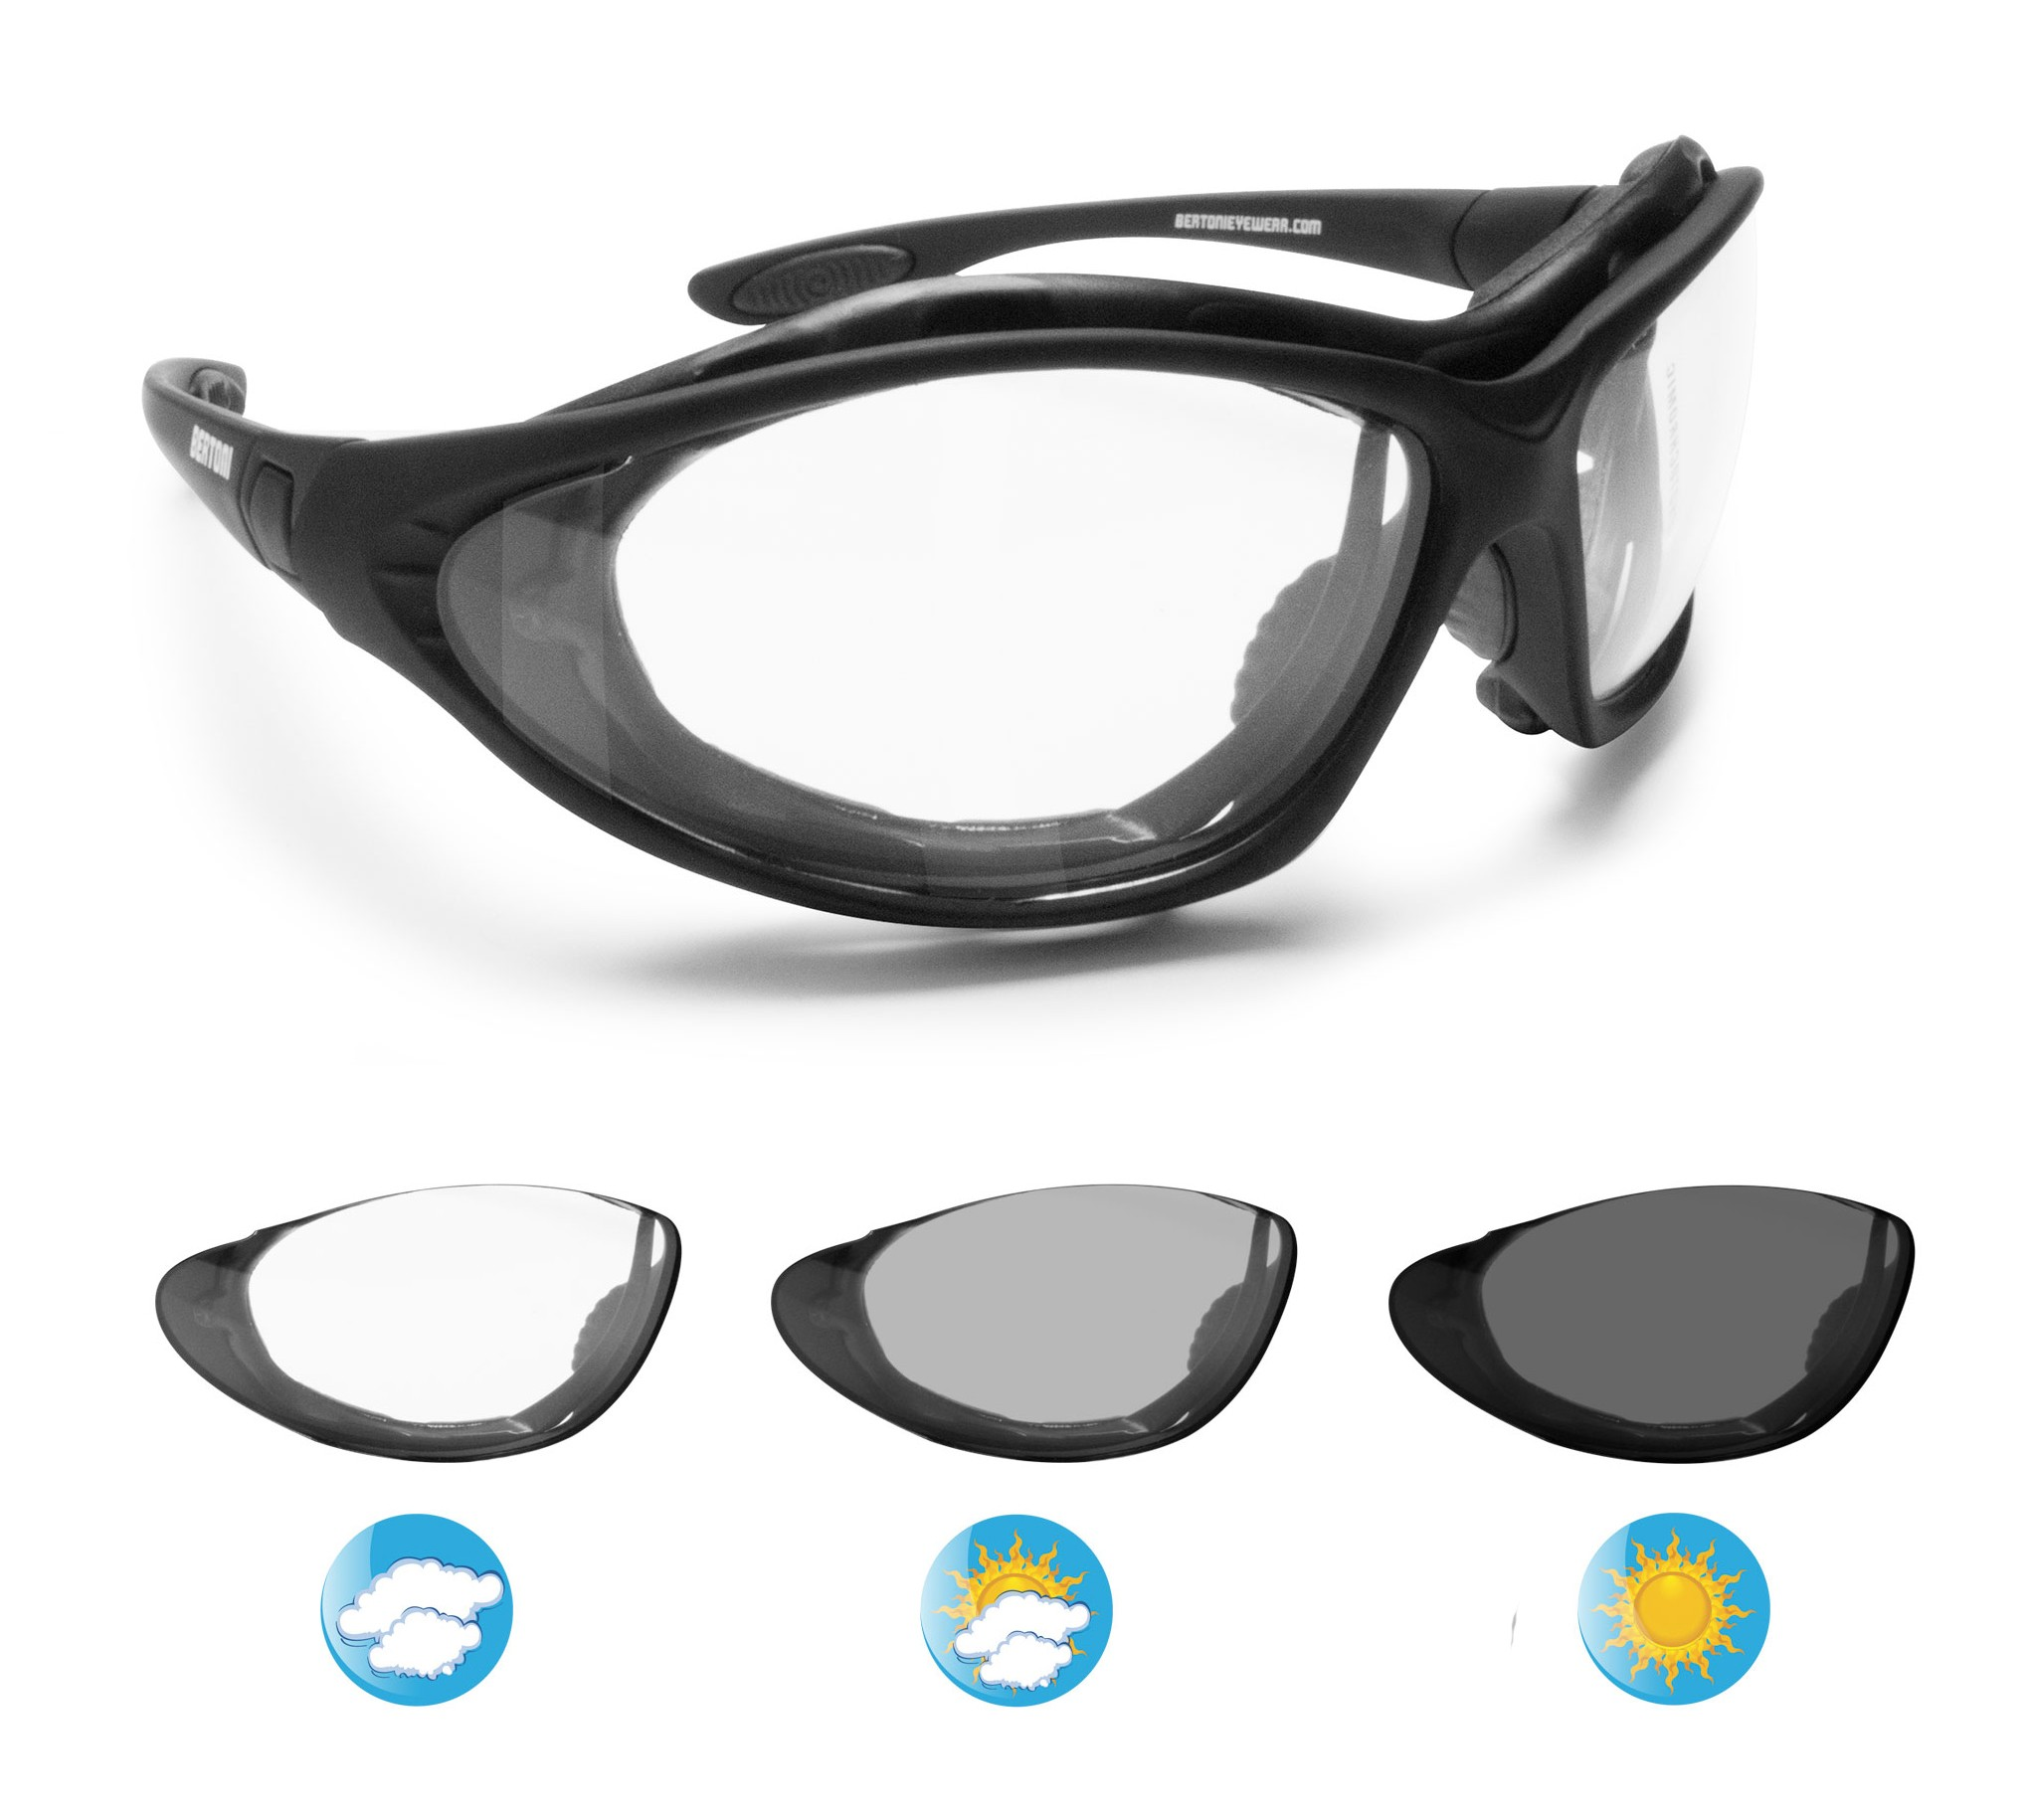 6226915fed6c Photochromic Motorcycle Goggles - F333A by Bertoni Italy